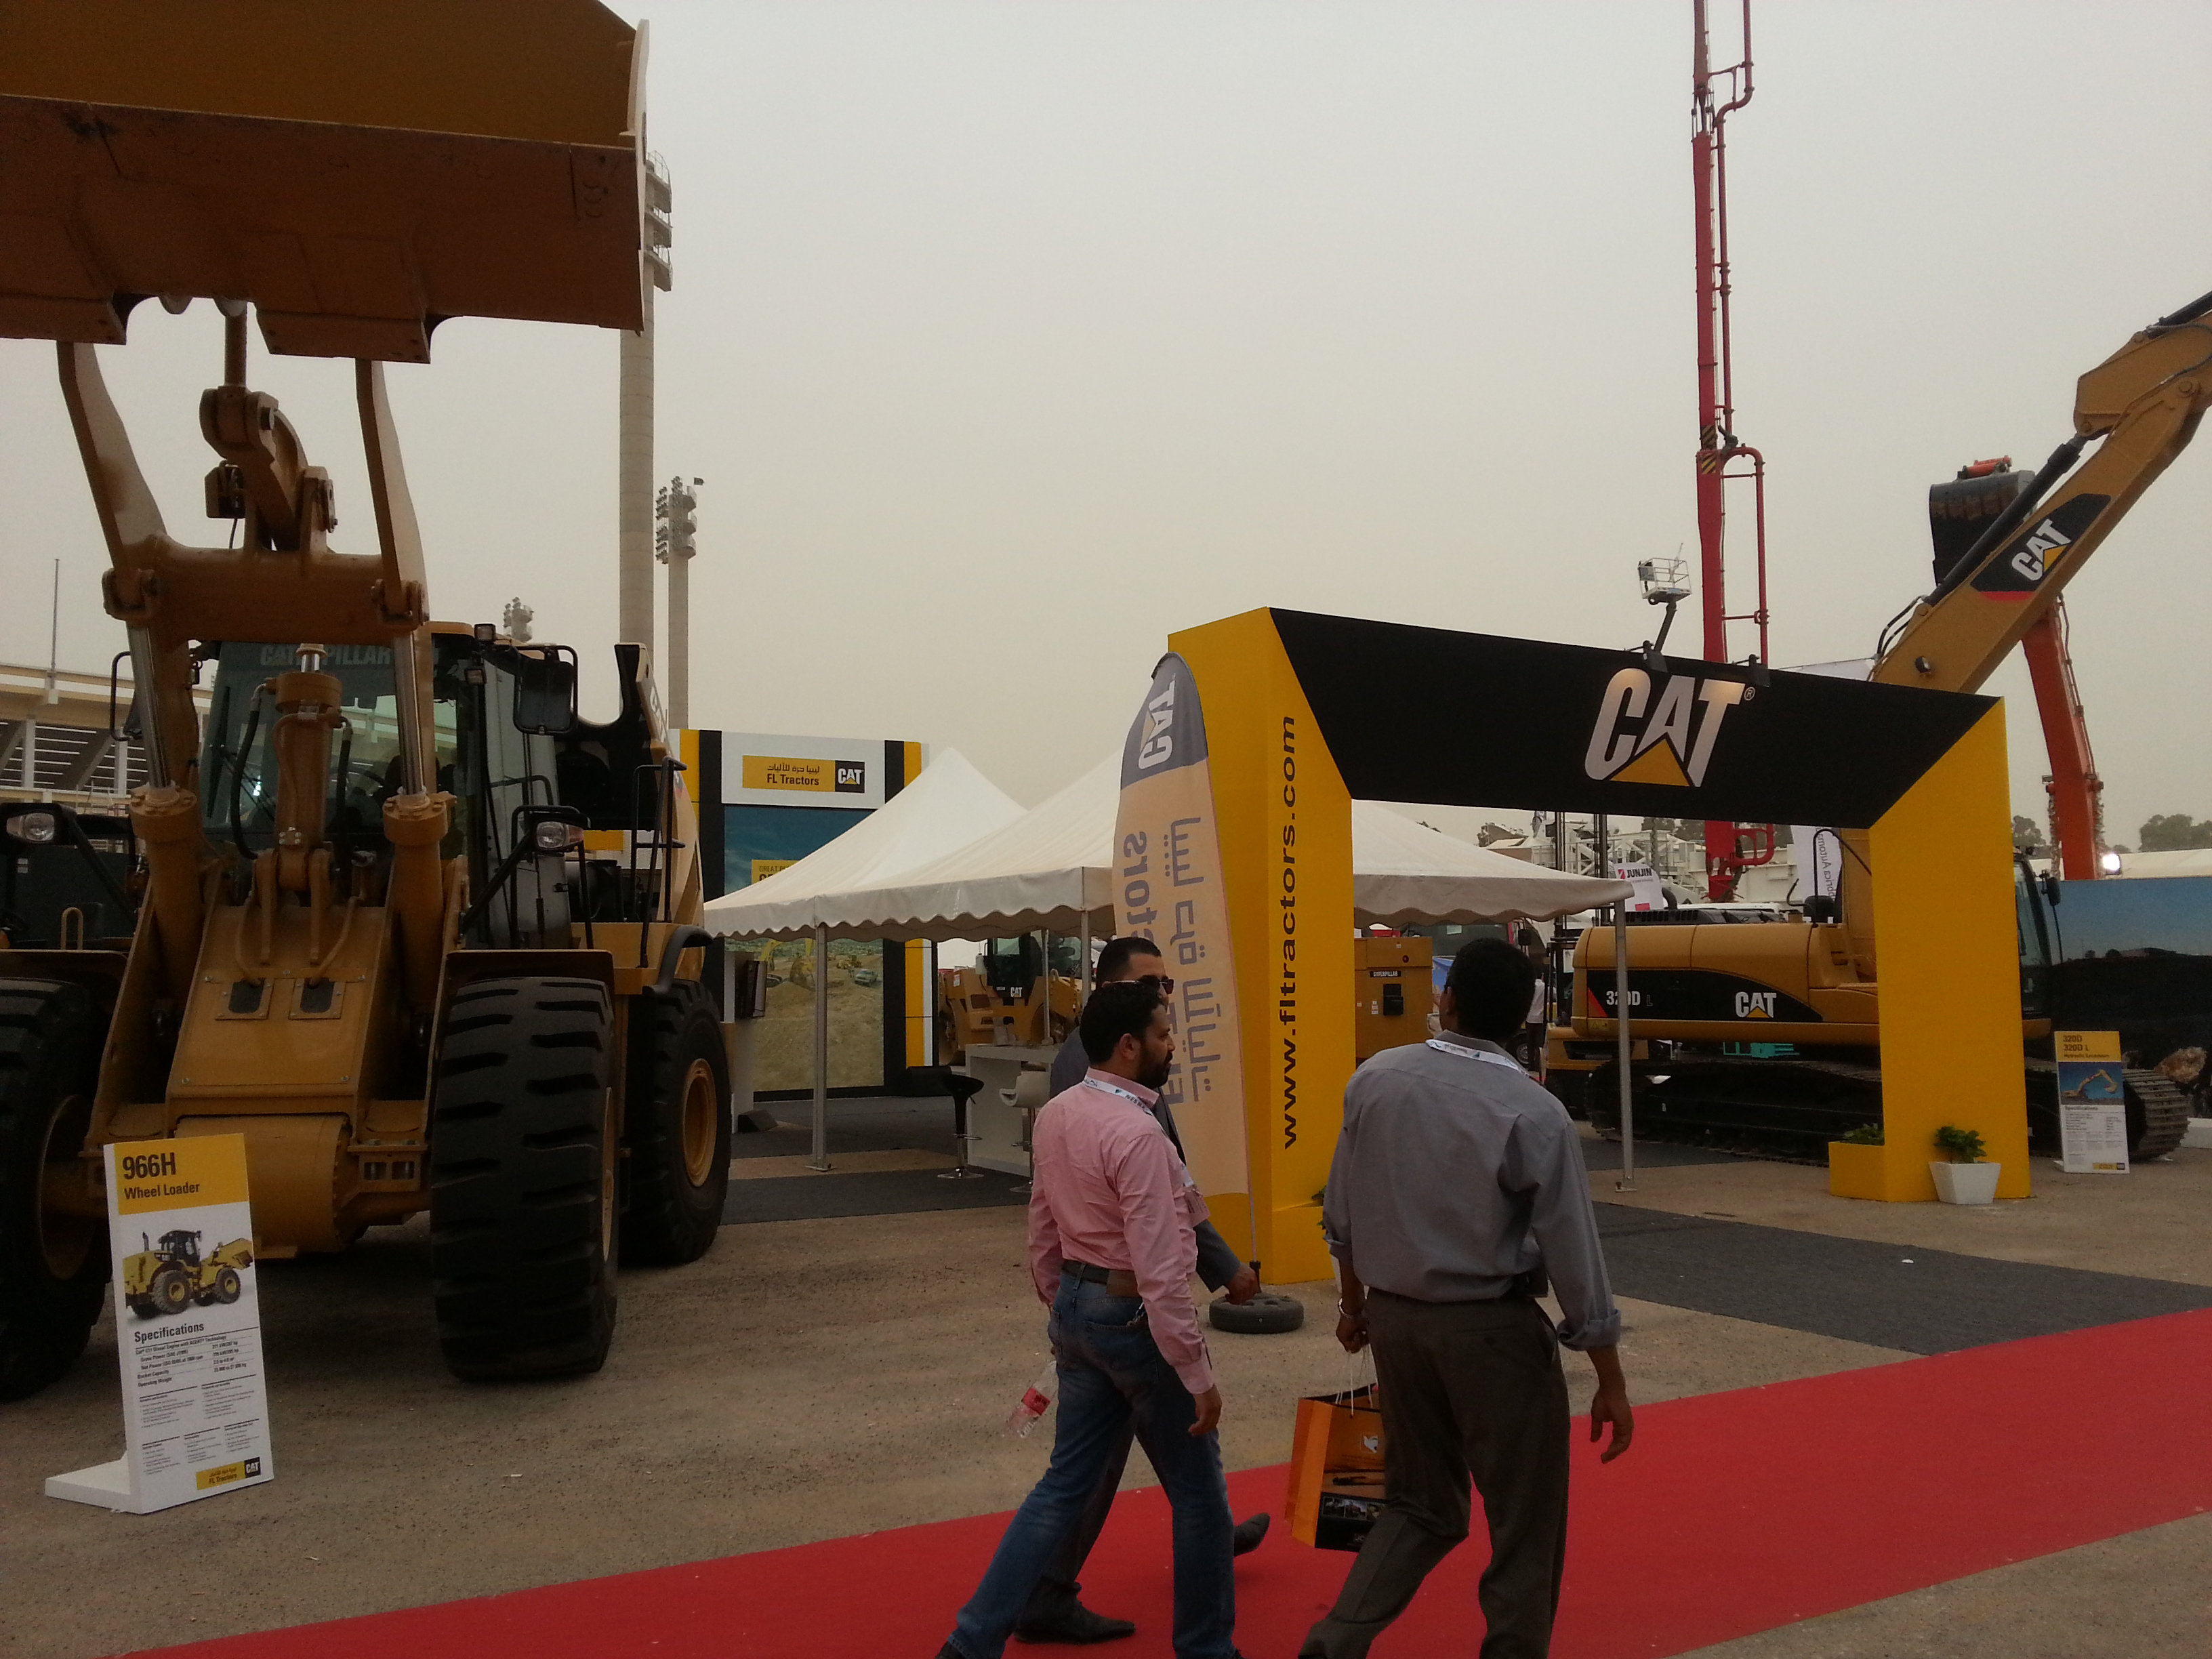 Caterpillar was one of very few US companies present at Libya Build 2013.